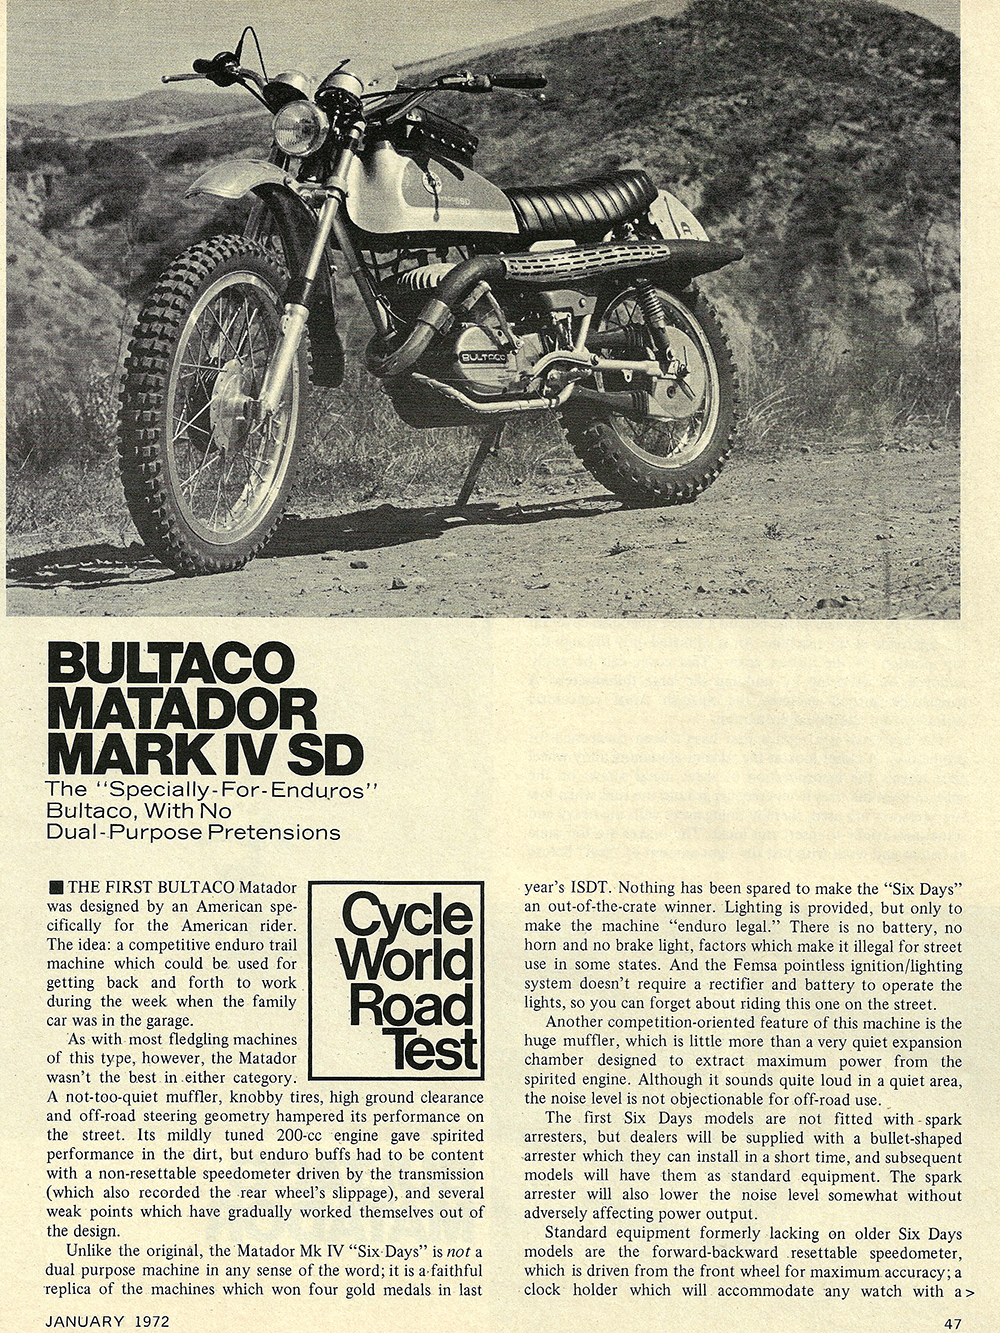 1972 Bultaco Matador Mark 4 SD road test 02.jpg